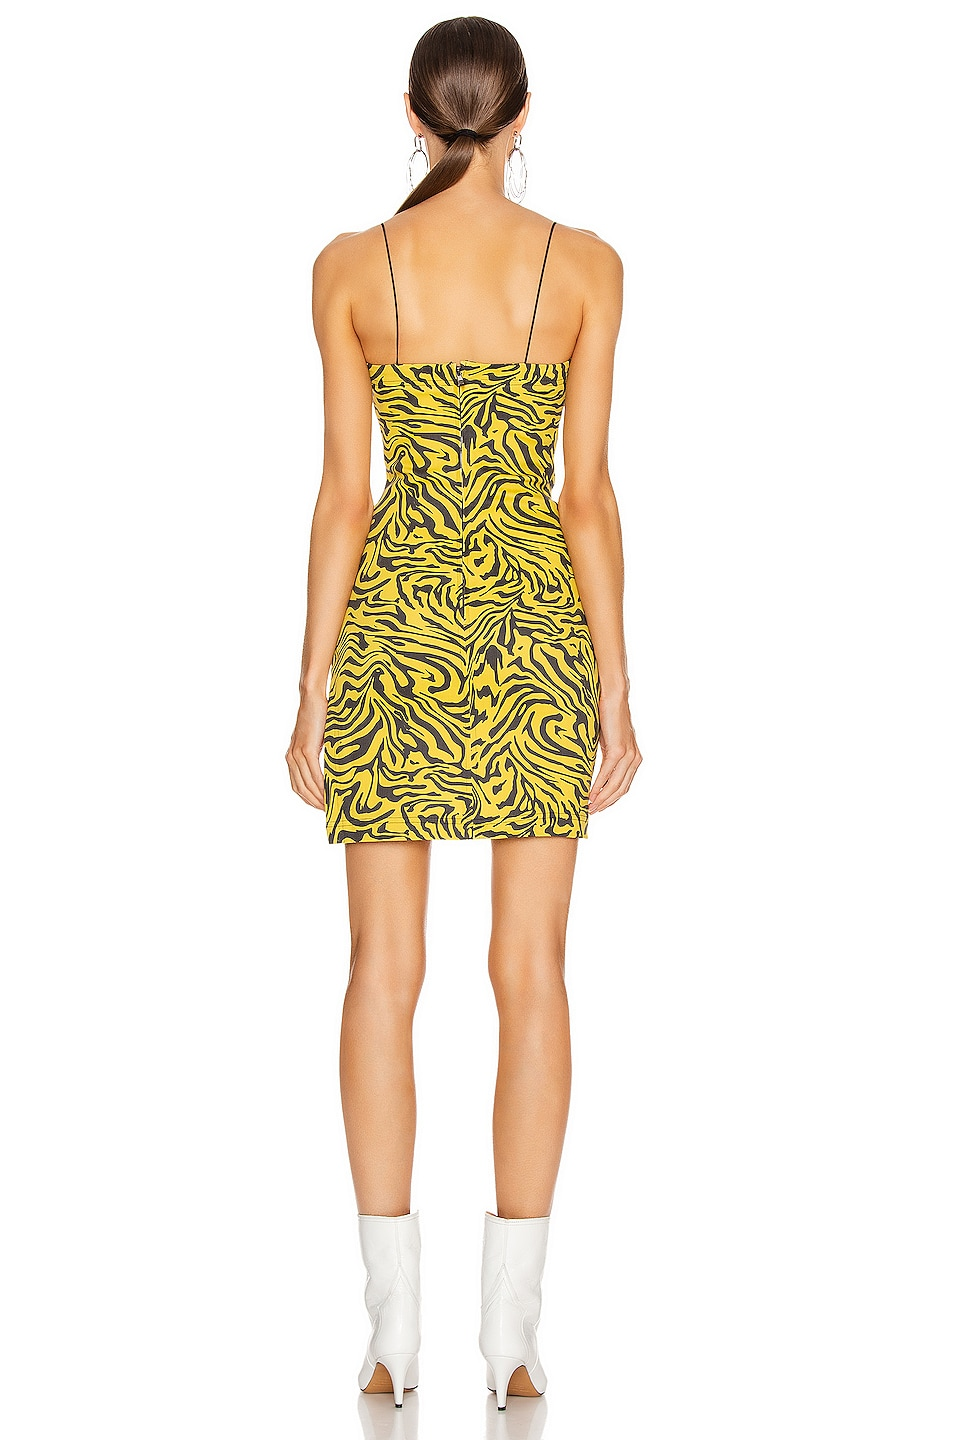 Image 3 of Miaou Lotte Dress in Yellow Zebra Print